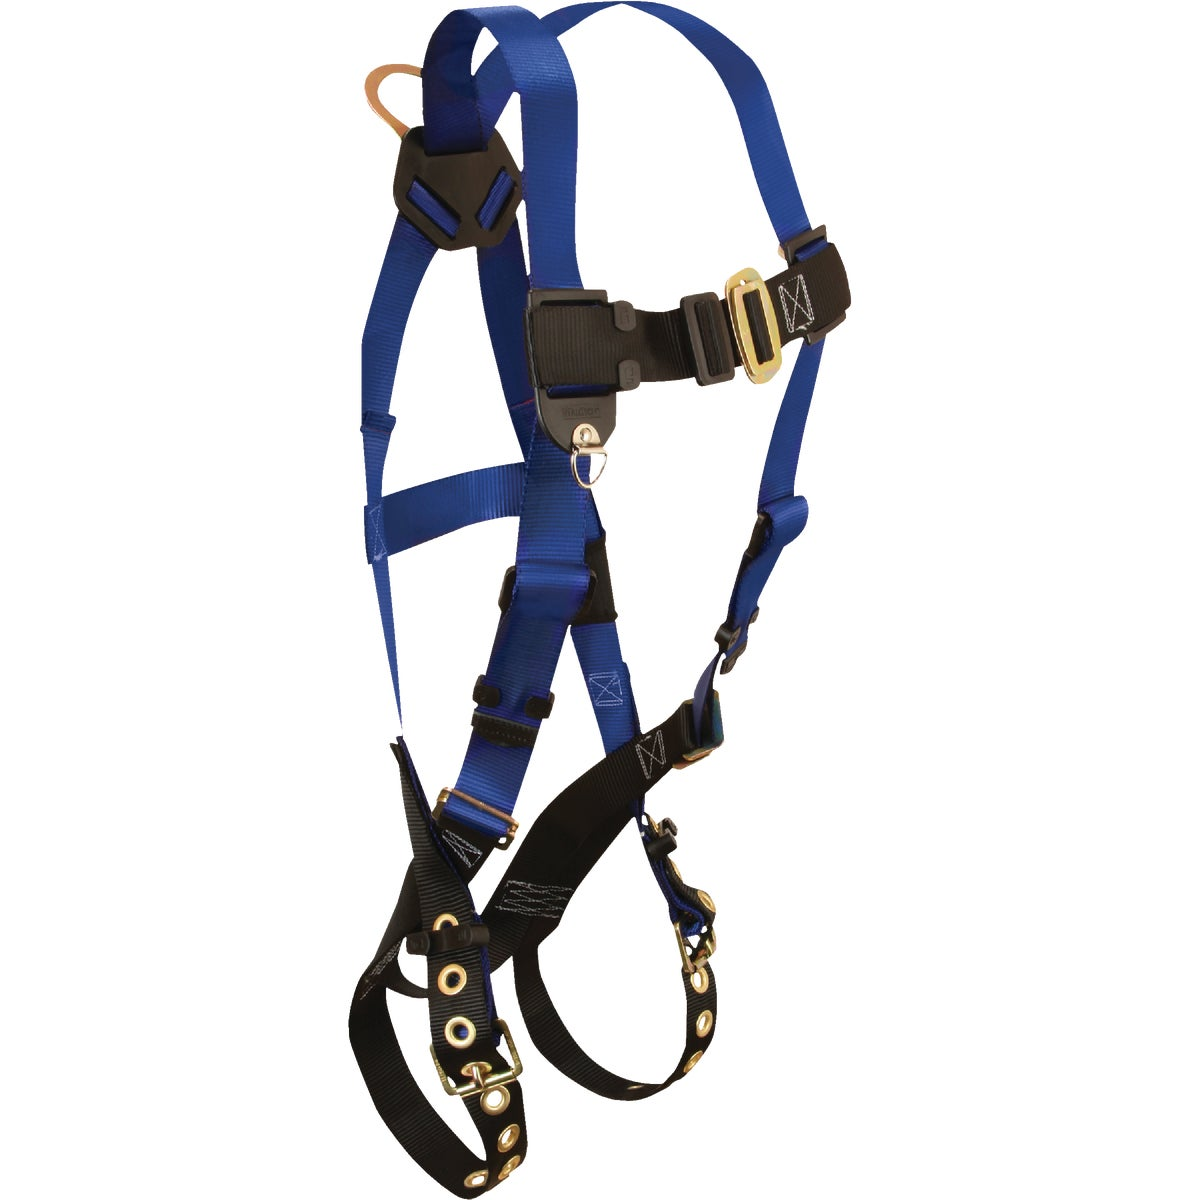 HARNESS - A7016 by Fall Tech